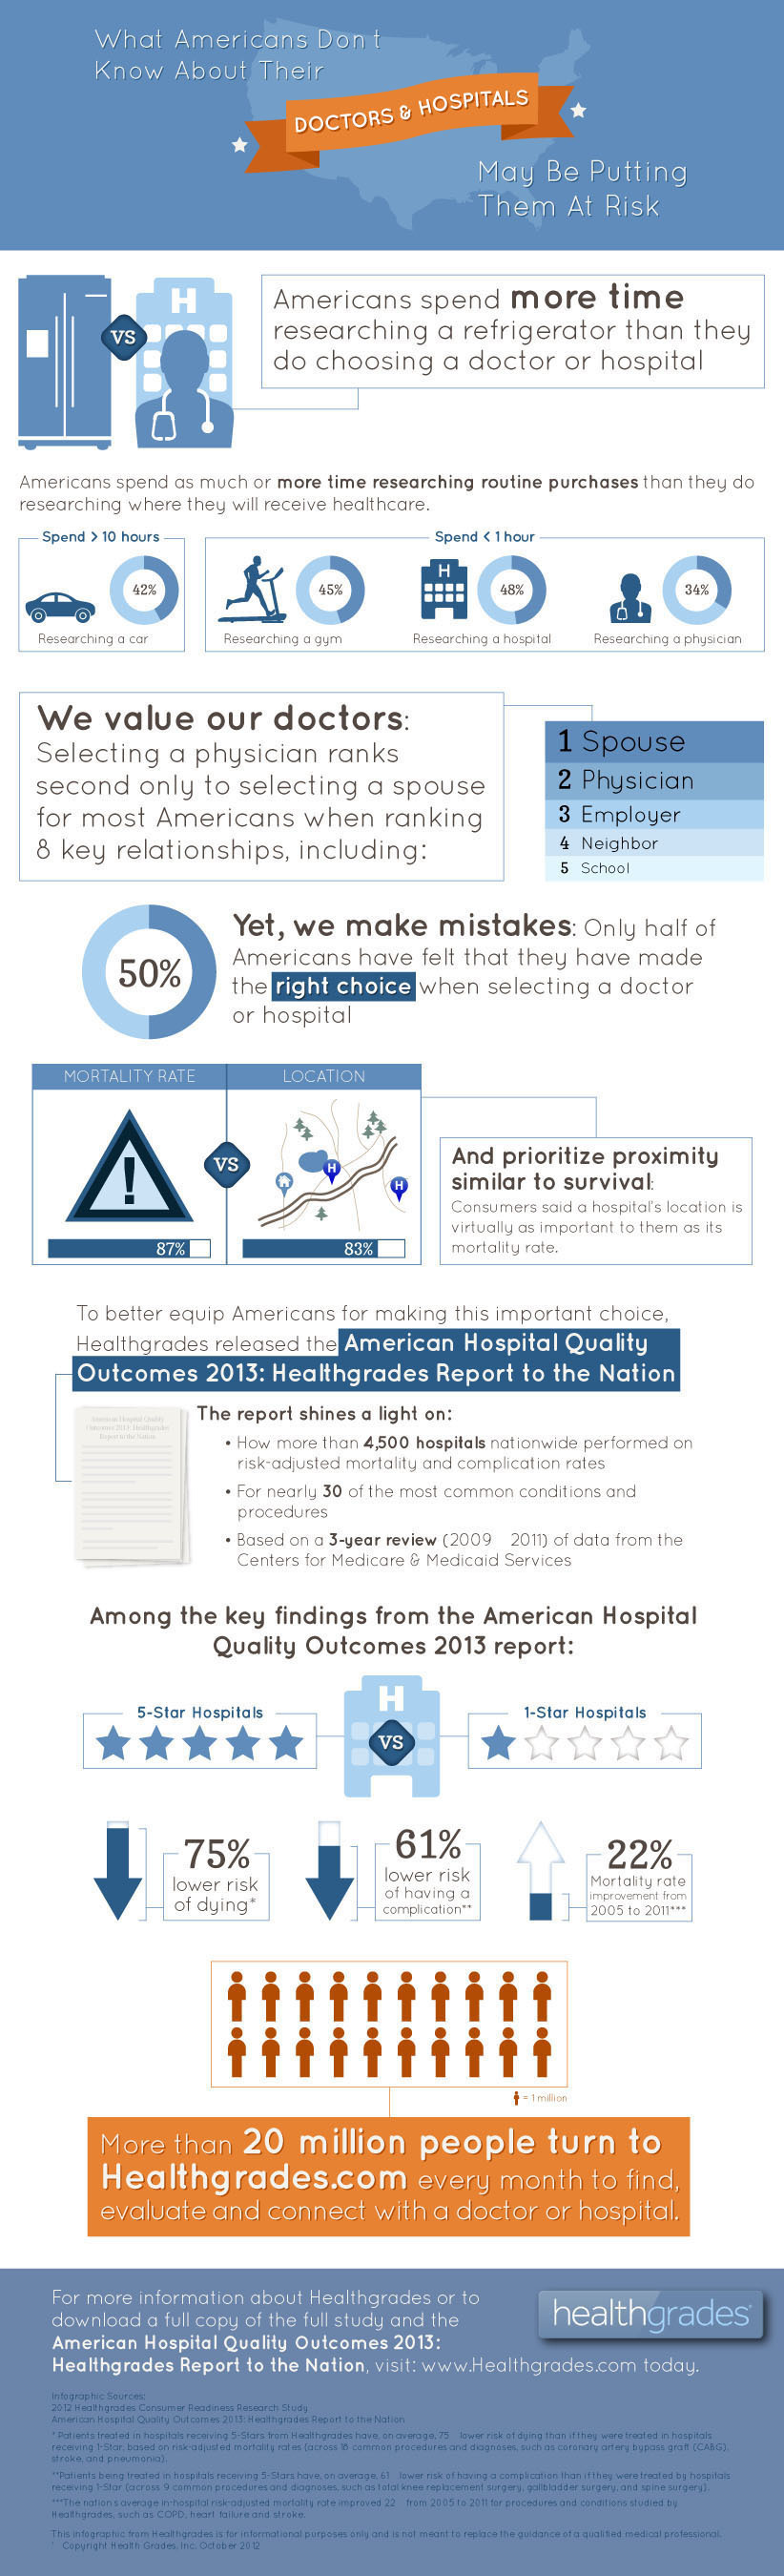 What Americans Don't Know About Their Doctors & Hospitals May Be Putting Them At Risk Source: Healthgrades.  ...